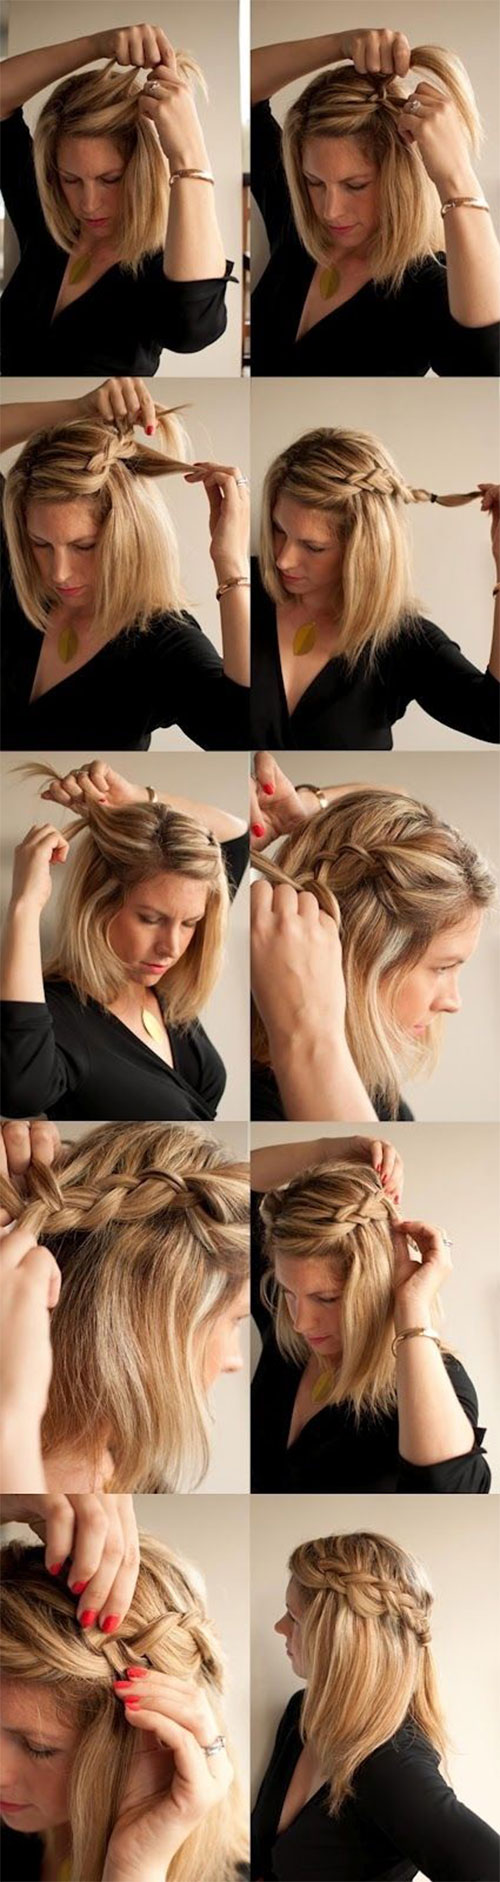 15-Step-By-Step-Summer-Hairstyle-Tutorials-For-Beginners-Learners-2015-7